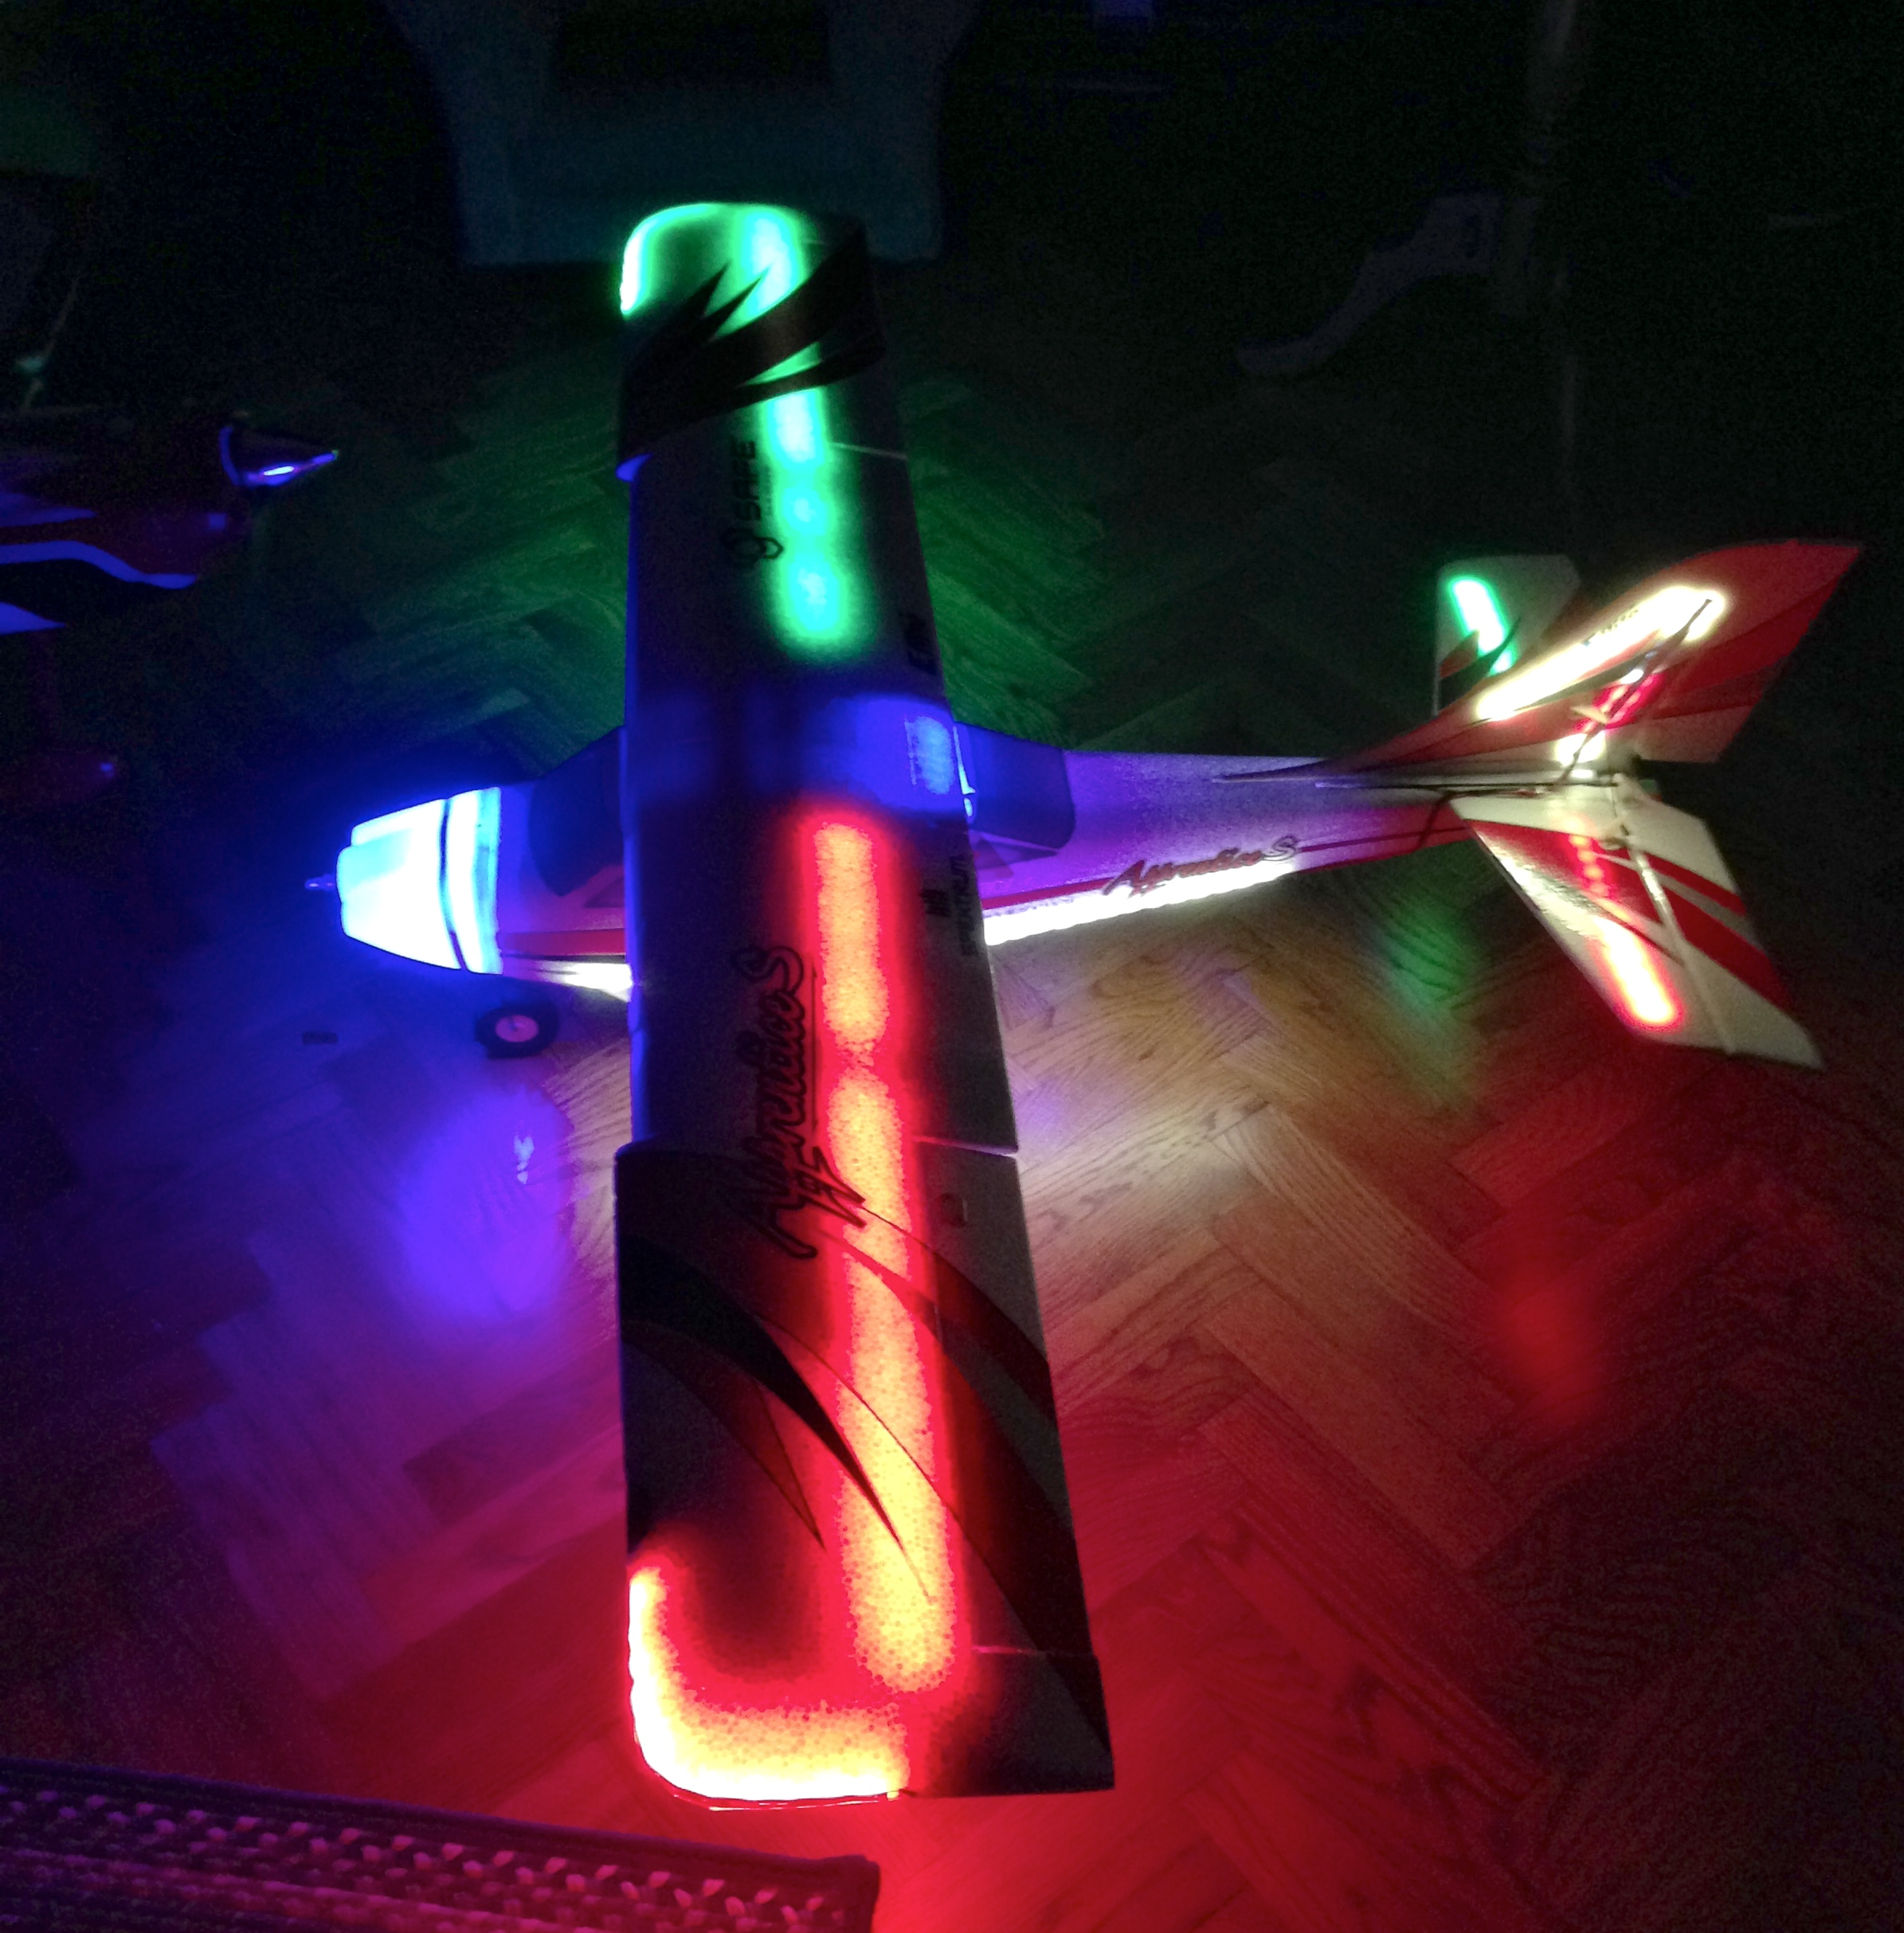 Night Flying With Led Lights On The E Flite Apprentice S 15e Options Solid Color Leds At Full Blast All